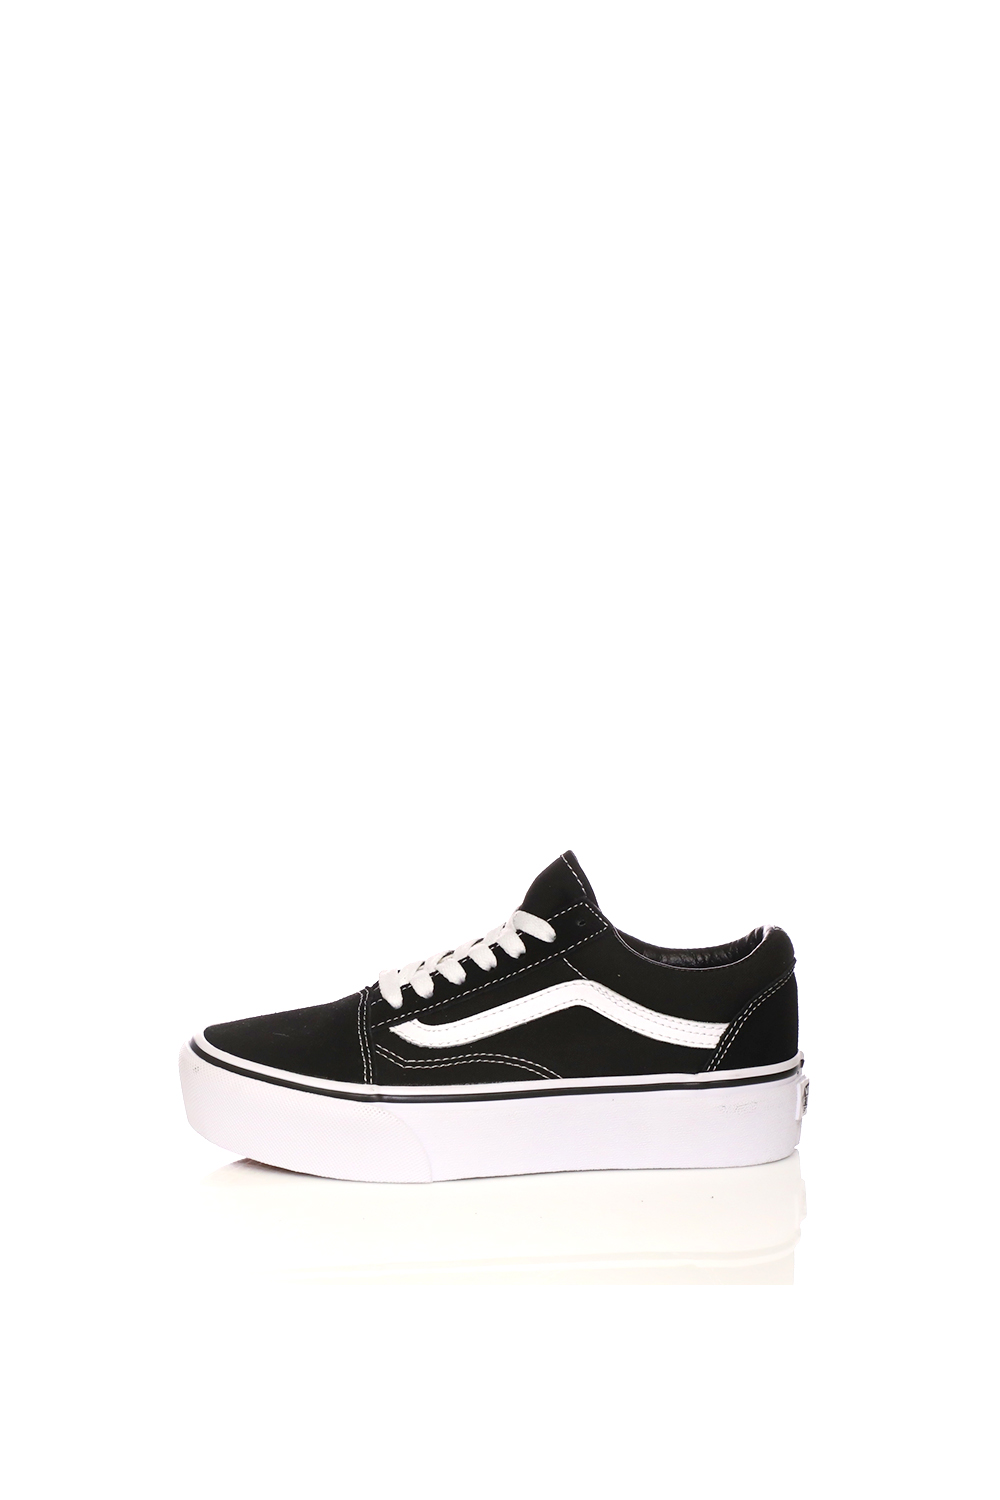 VANS – Unisex sneakers VANS Old Skool Platforms μαύρα